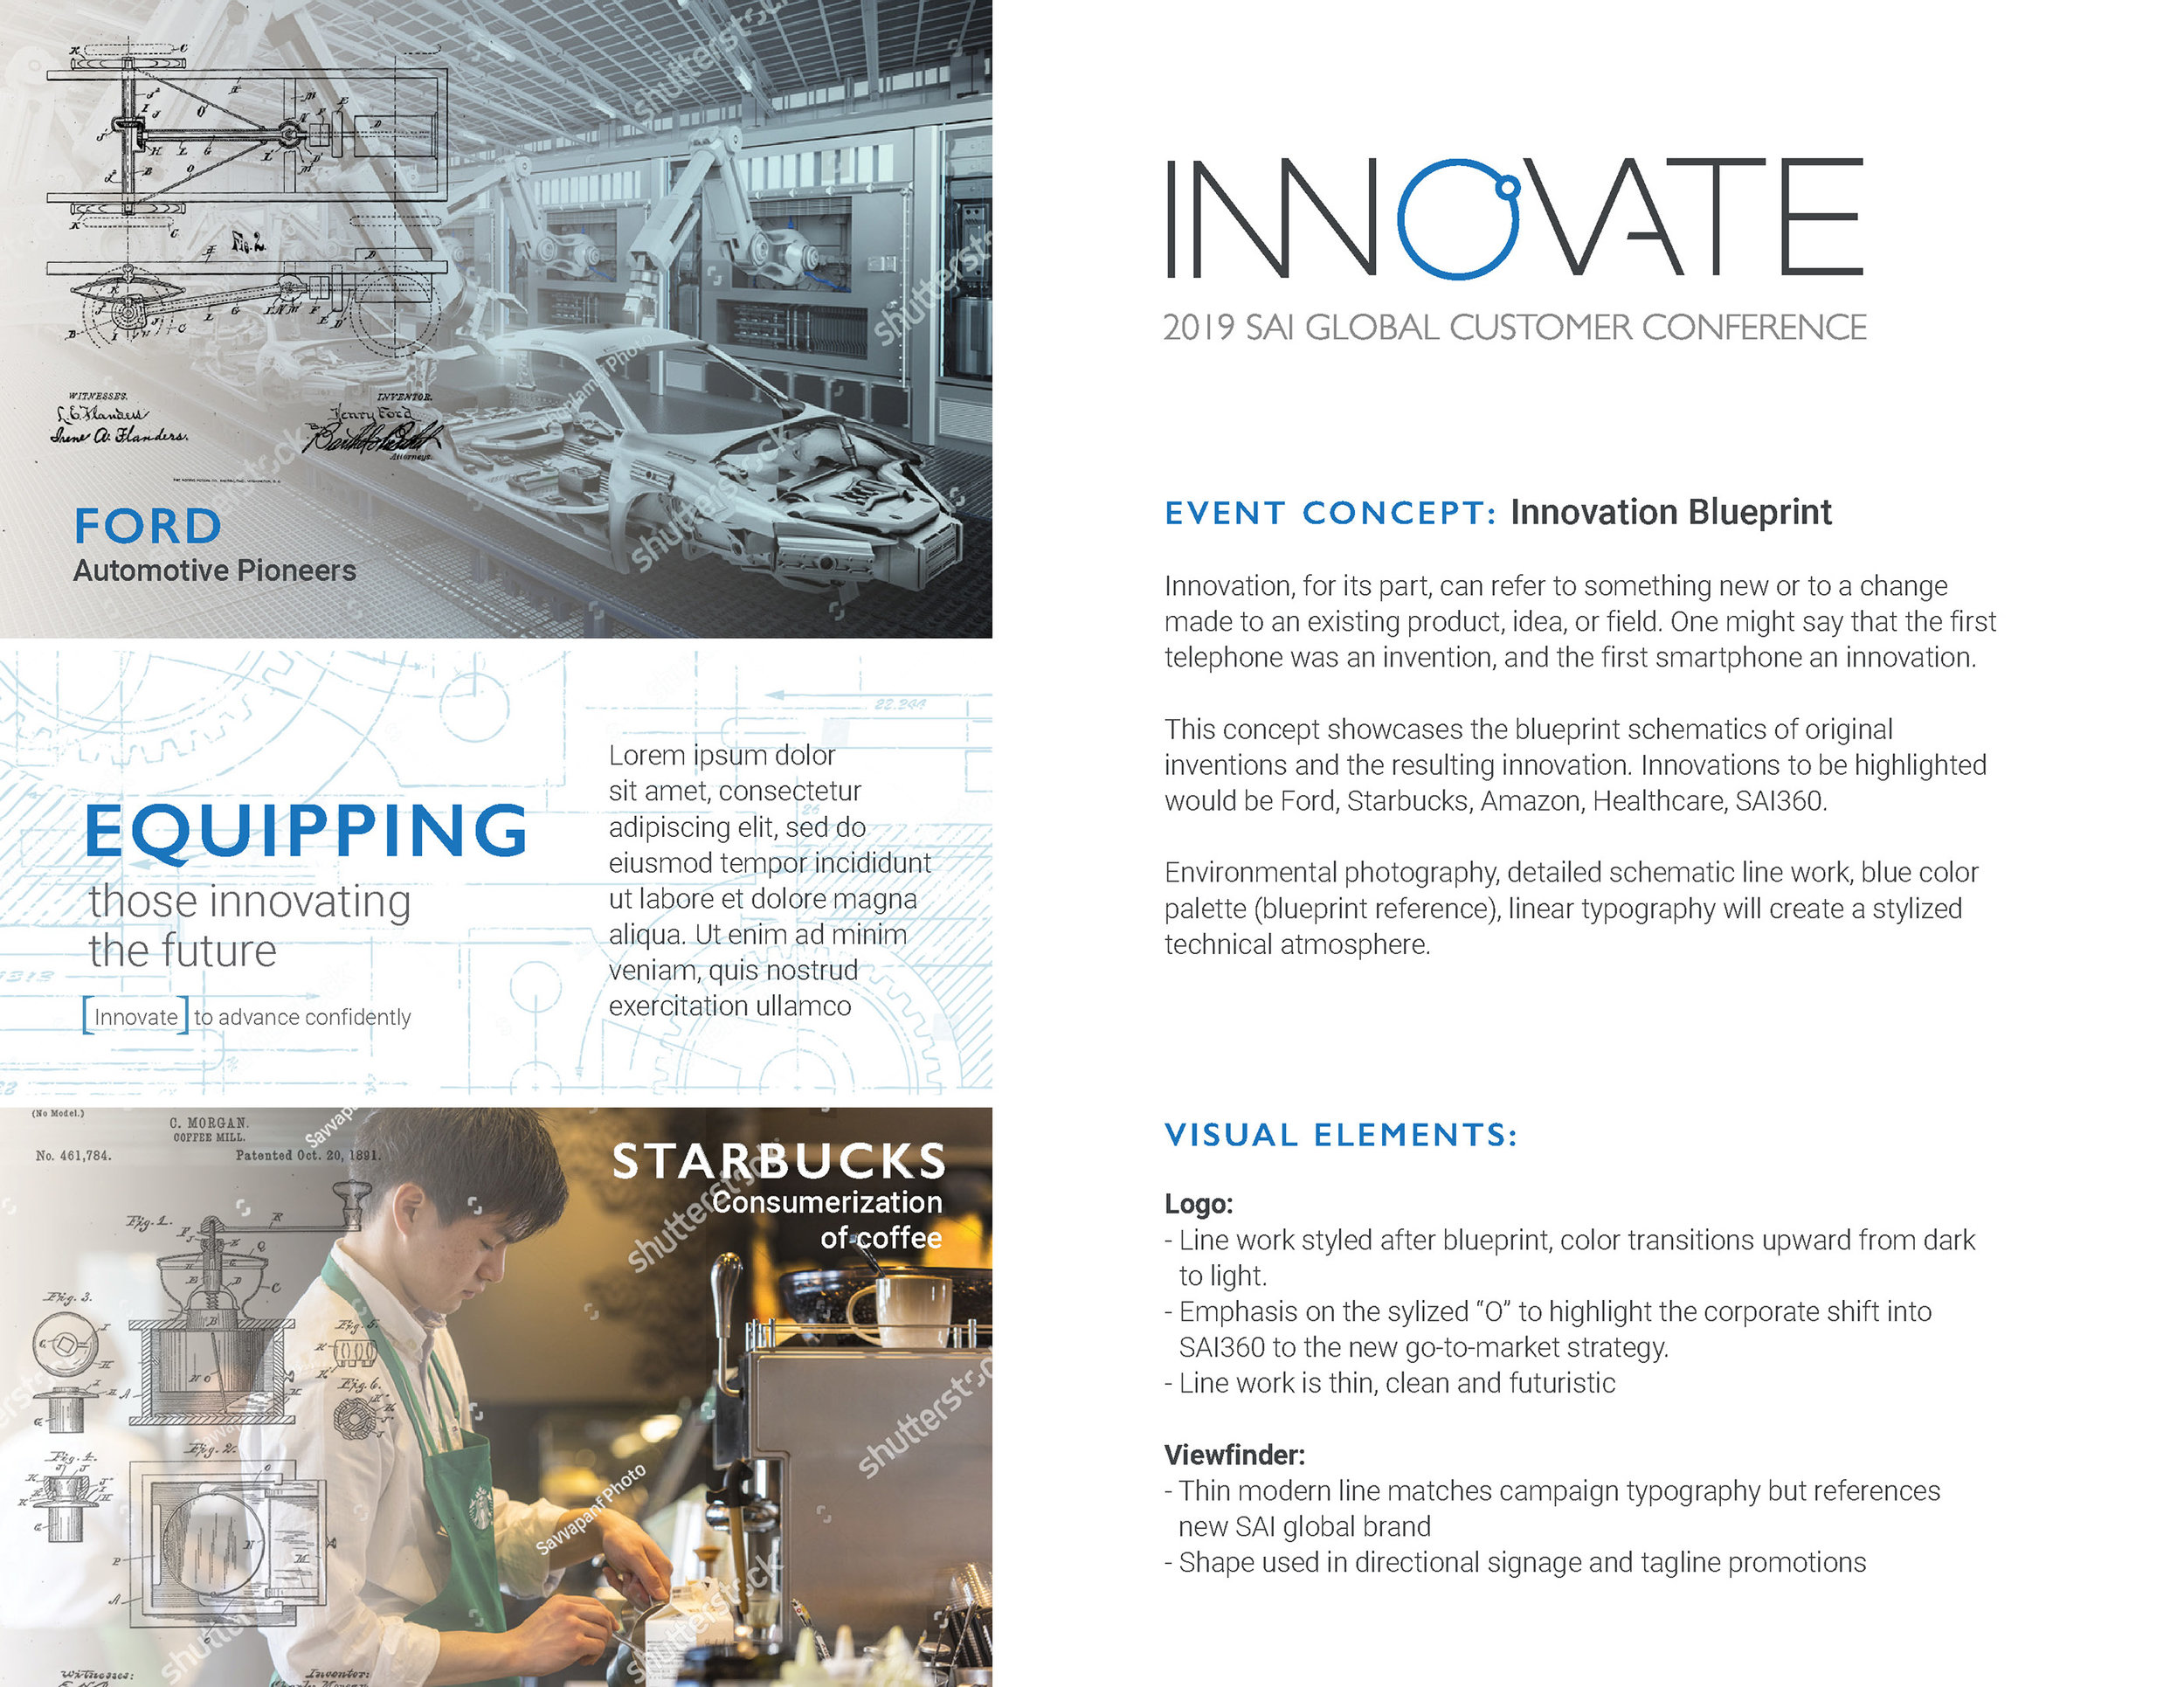 Innovate SAI Global Customer Conference Event Concept